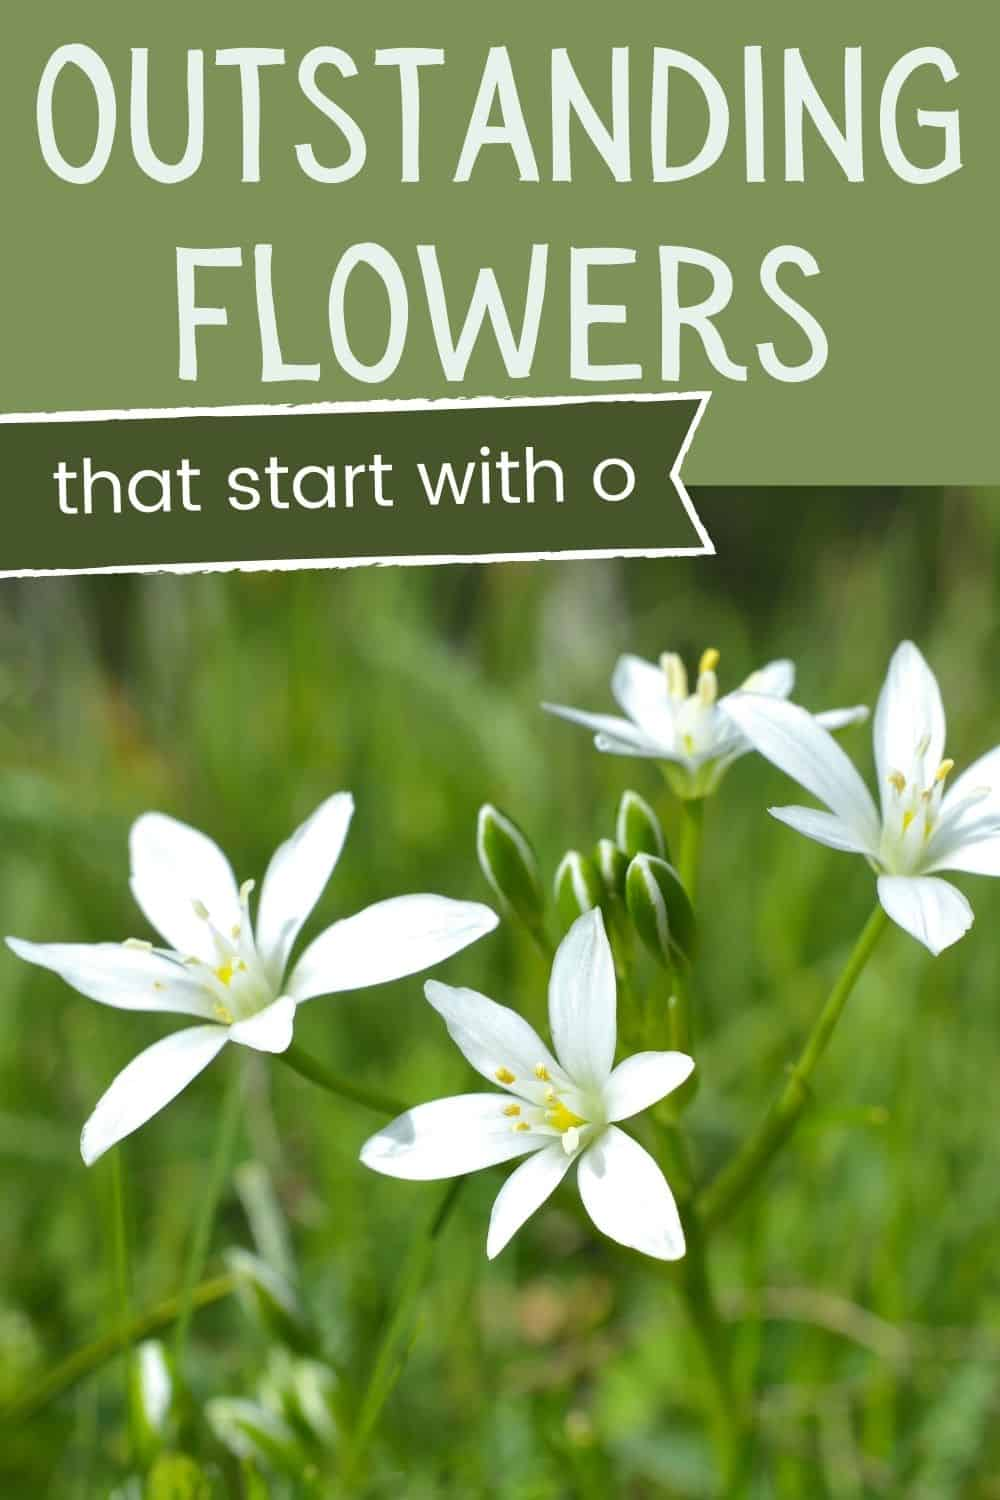 Outstanding flowers that start with O